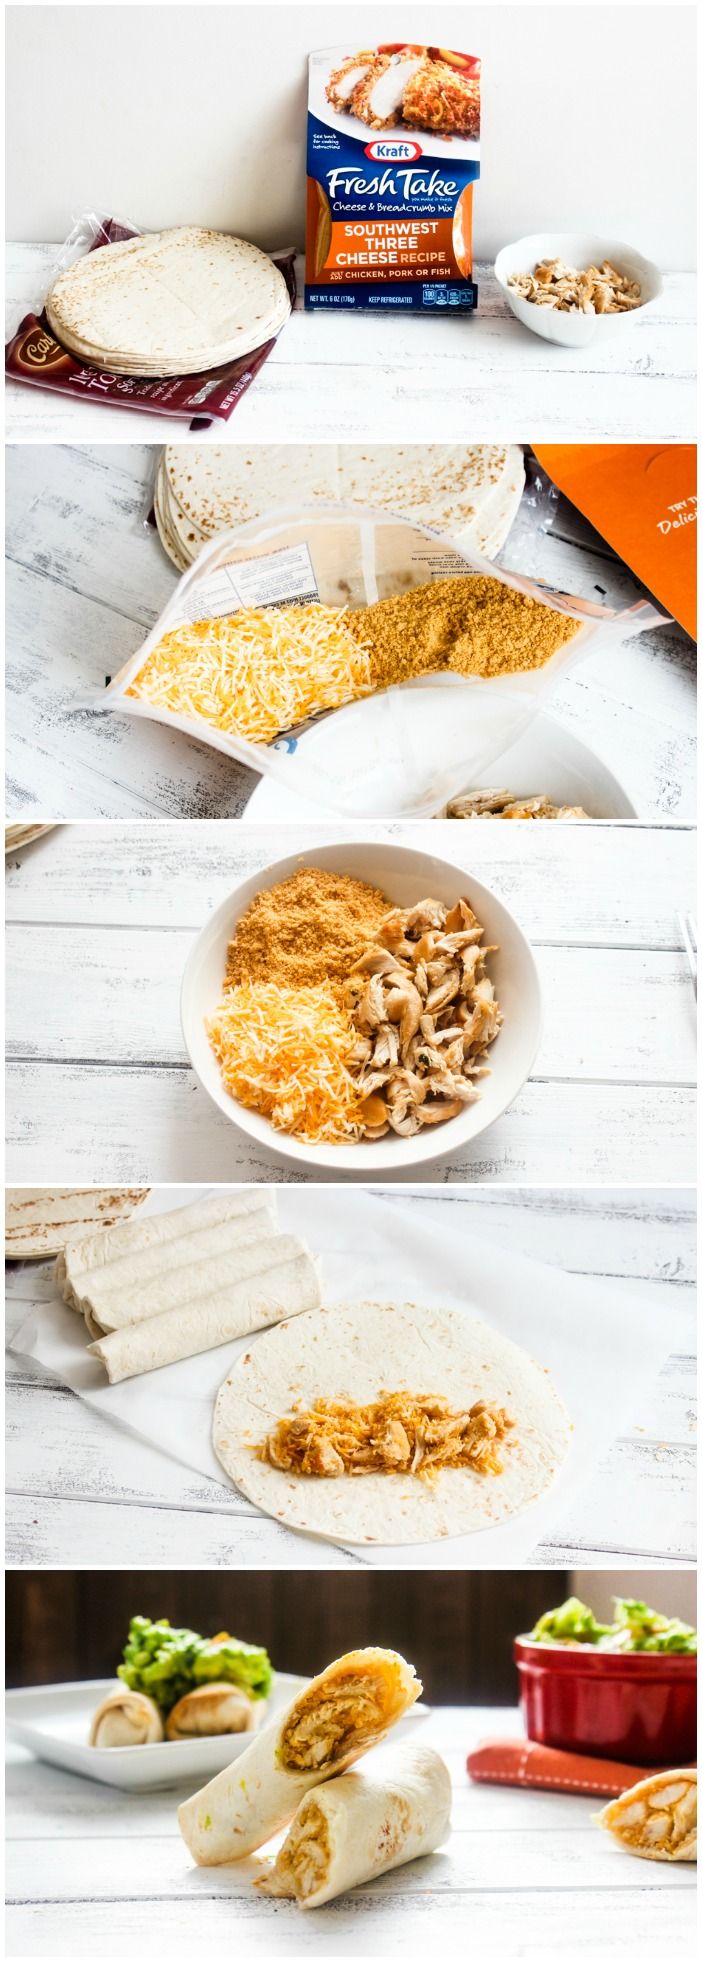 3 Ingredient Baked Southwestern Chicken and Cheese Rolls